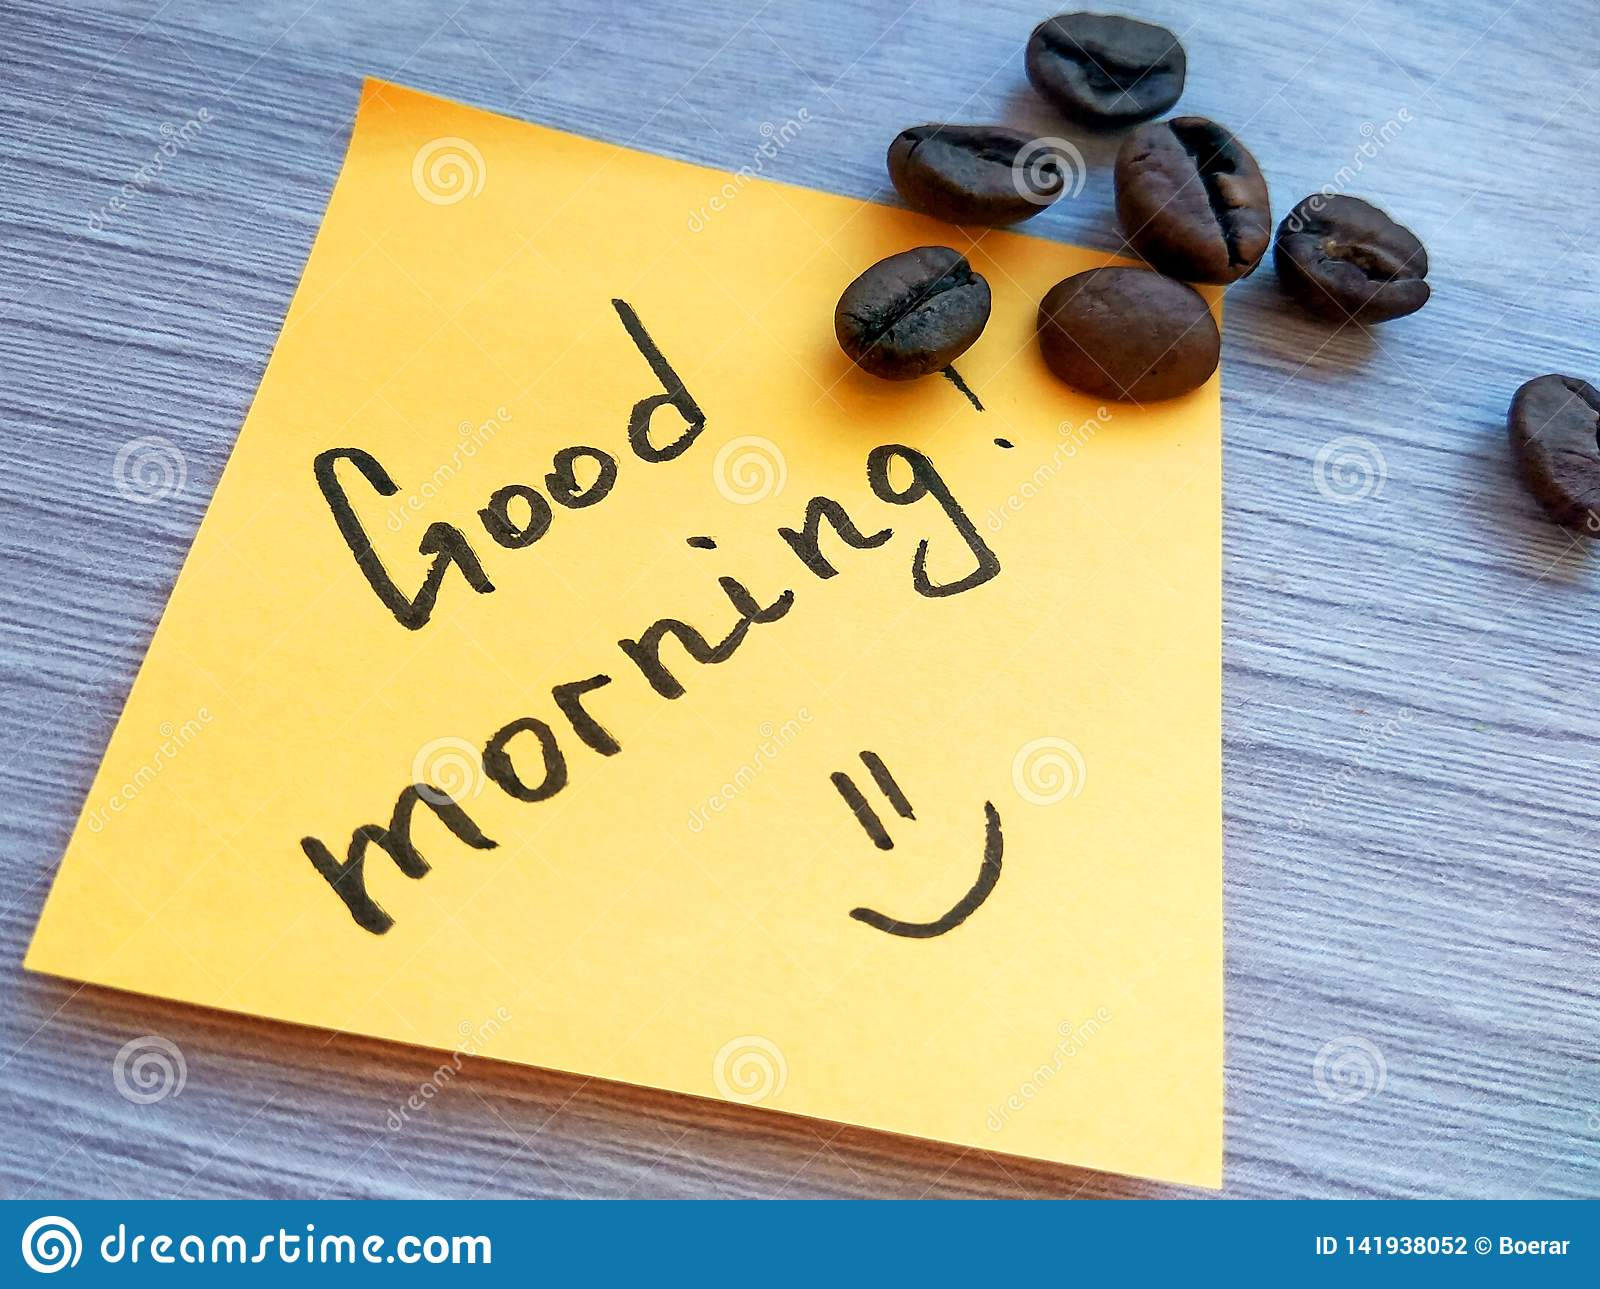 Good morning handwritten message on orange sticky note with coffee beans on wooden background